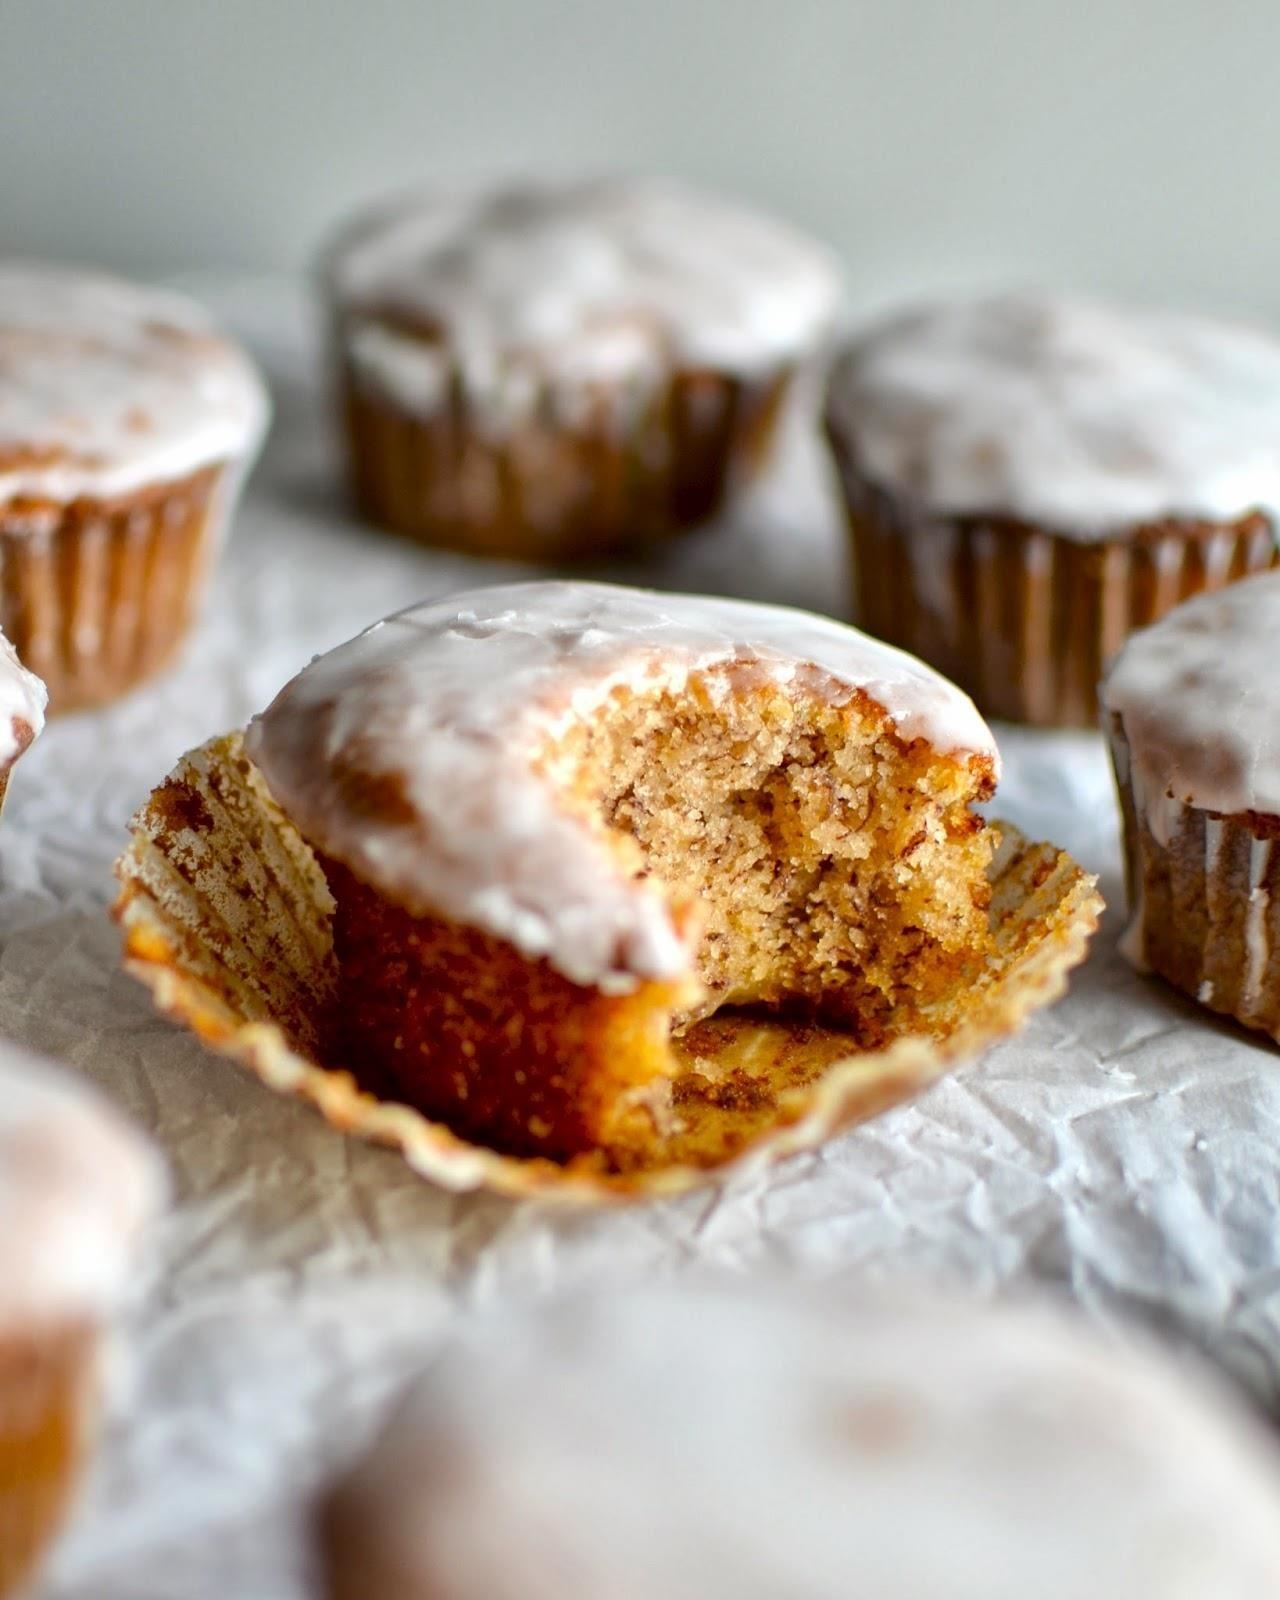 Mess-Free Muffins: No Mixing Bowl Required